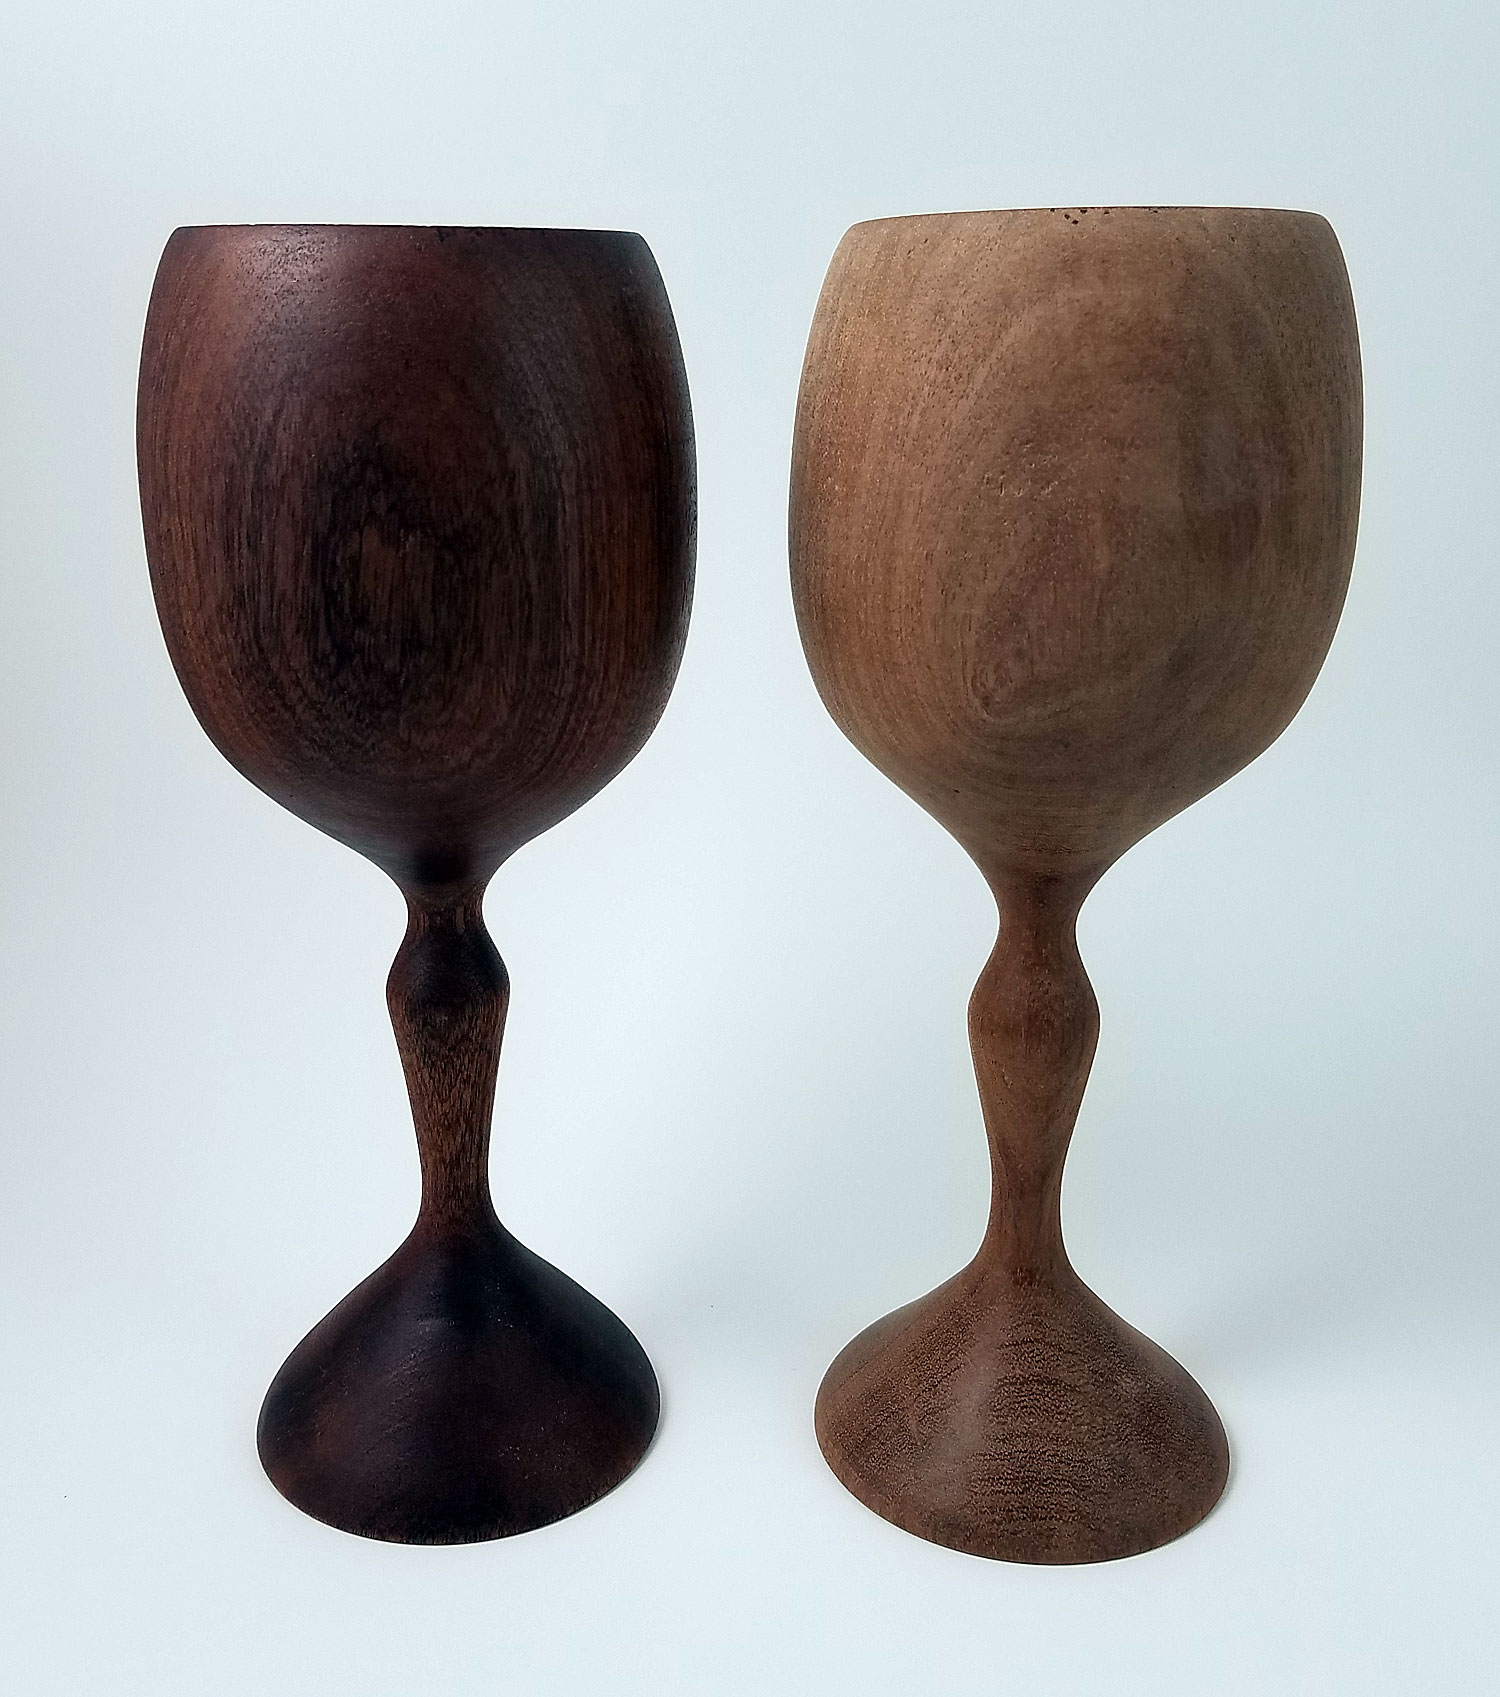 These two Sapele wood wine goblets are the same! The one on the right just hasn't had a finish applied yet. A little natural oil to lubricate the wood goes a long way!